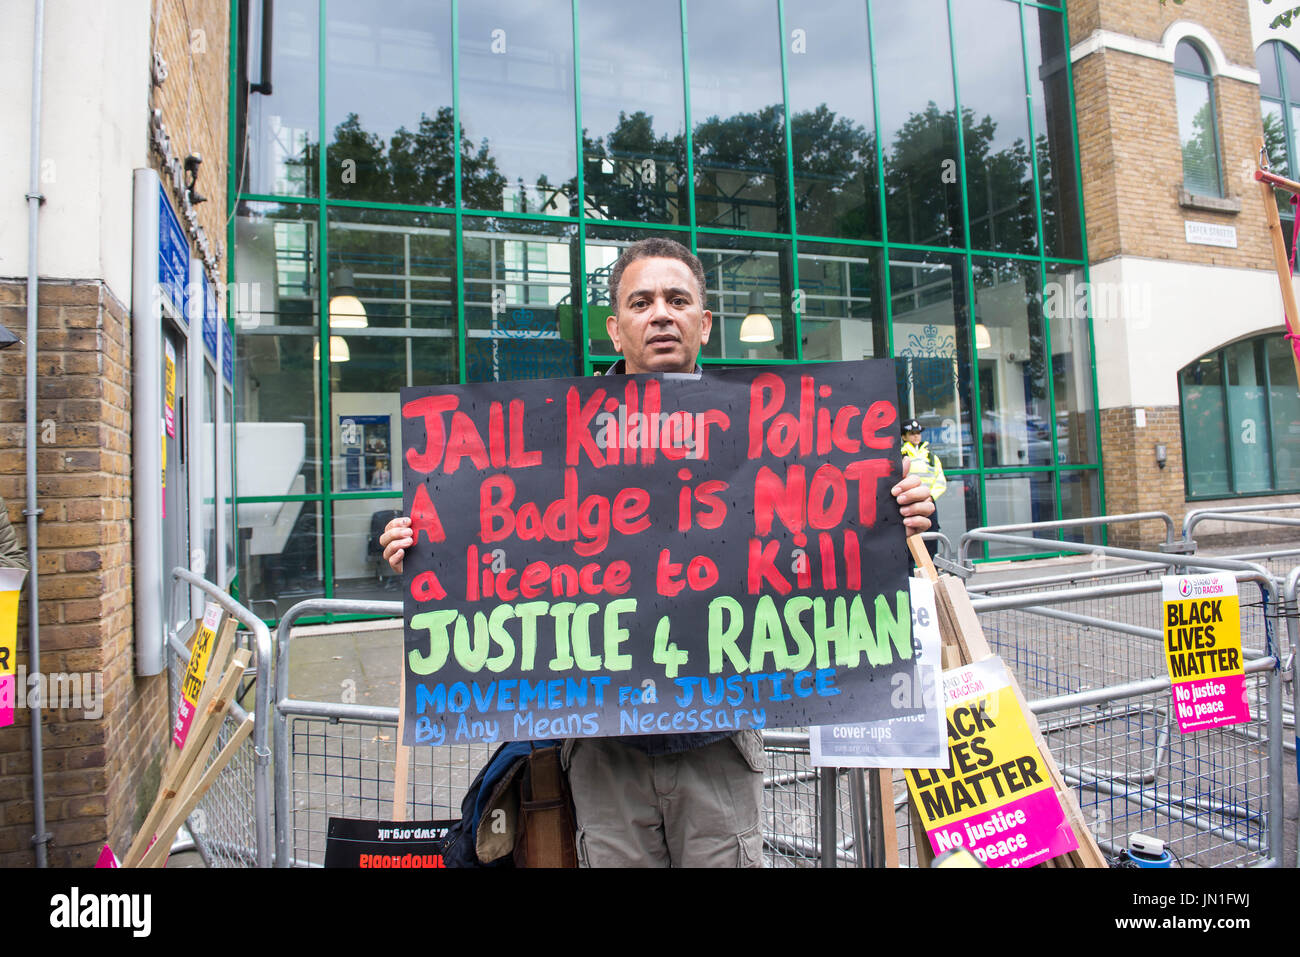 Stoke Newington, London. 29th July 2017. Protest took place at Stoke Newington police station over the death of Rashan Charles. Charles, 20, died after being apprehended by police in the early hours of July 22. Michael Tubi / Alamy Live News. - Stock Image